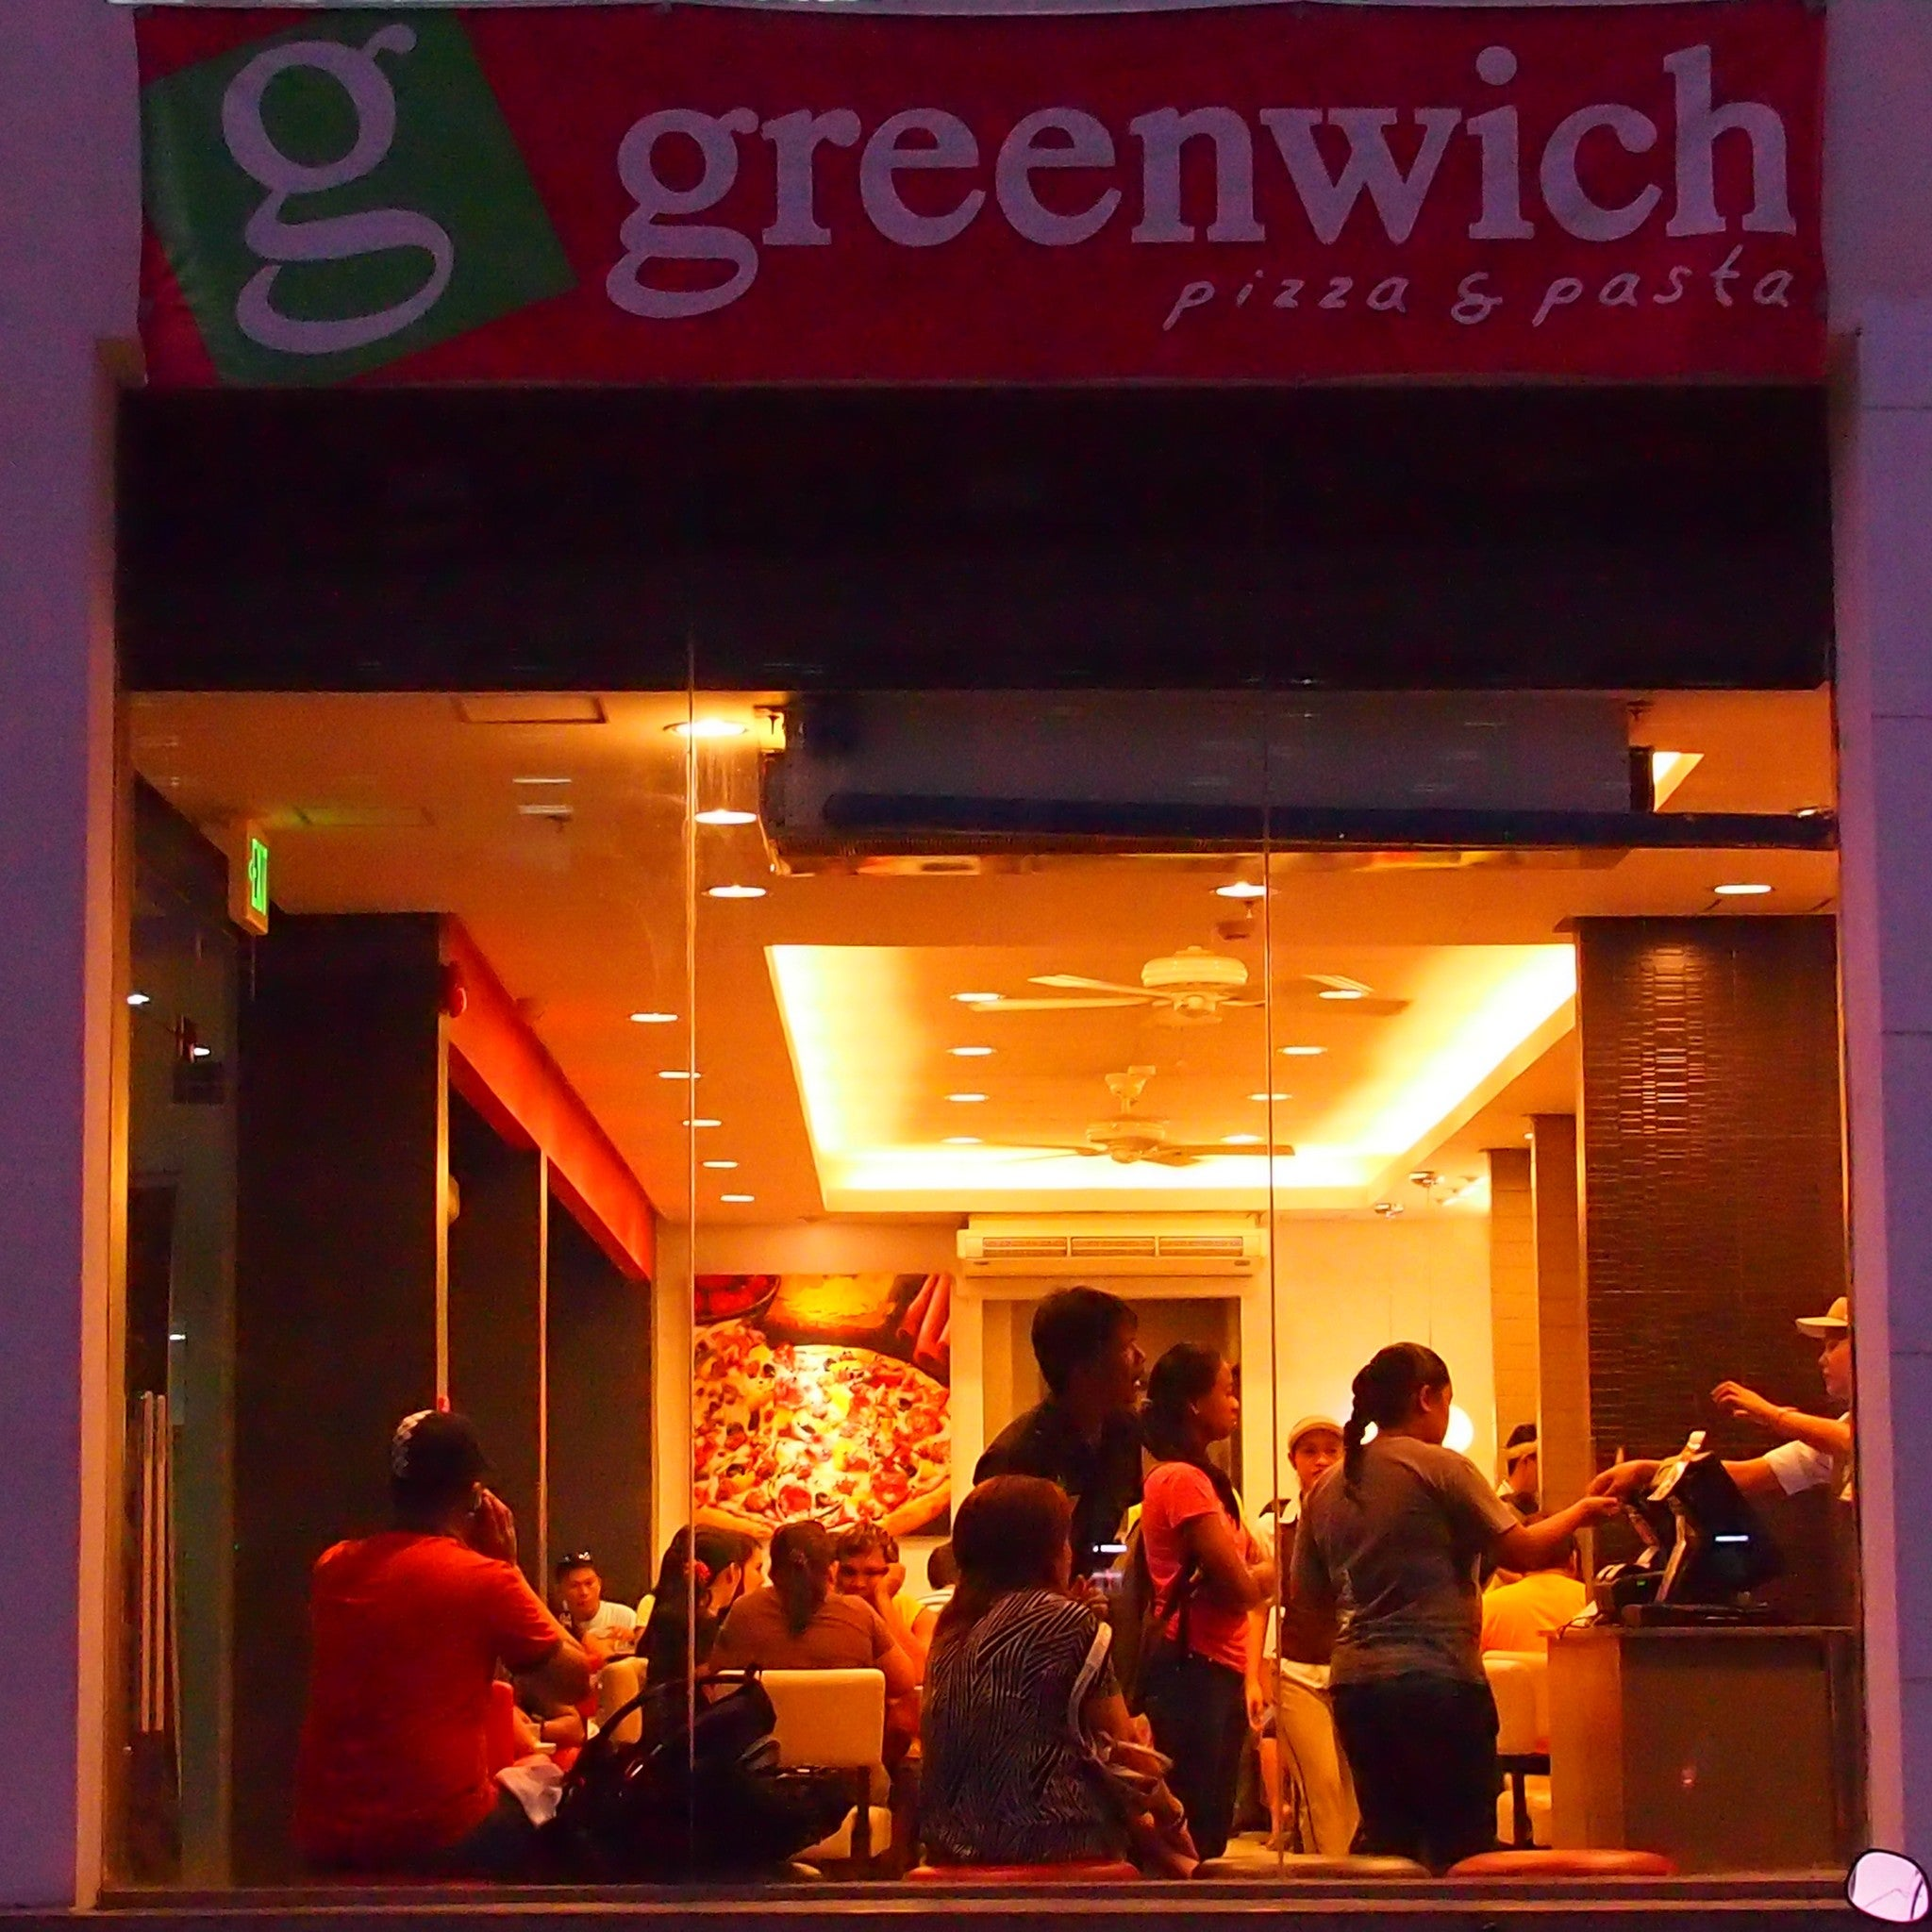 Greenwich (pizza and Pasta)